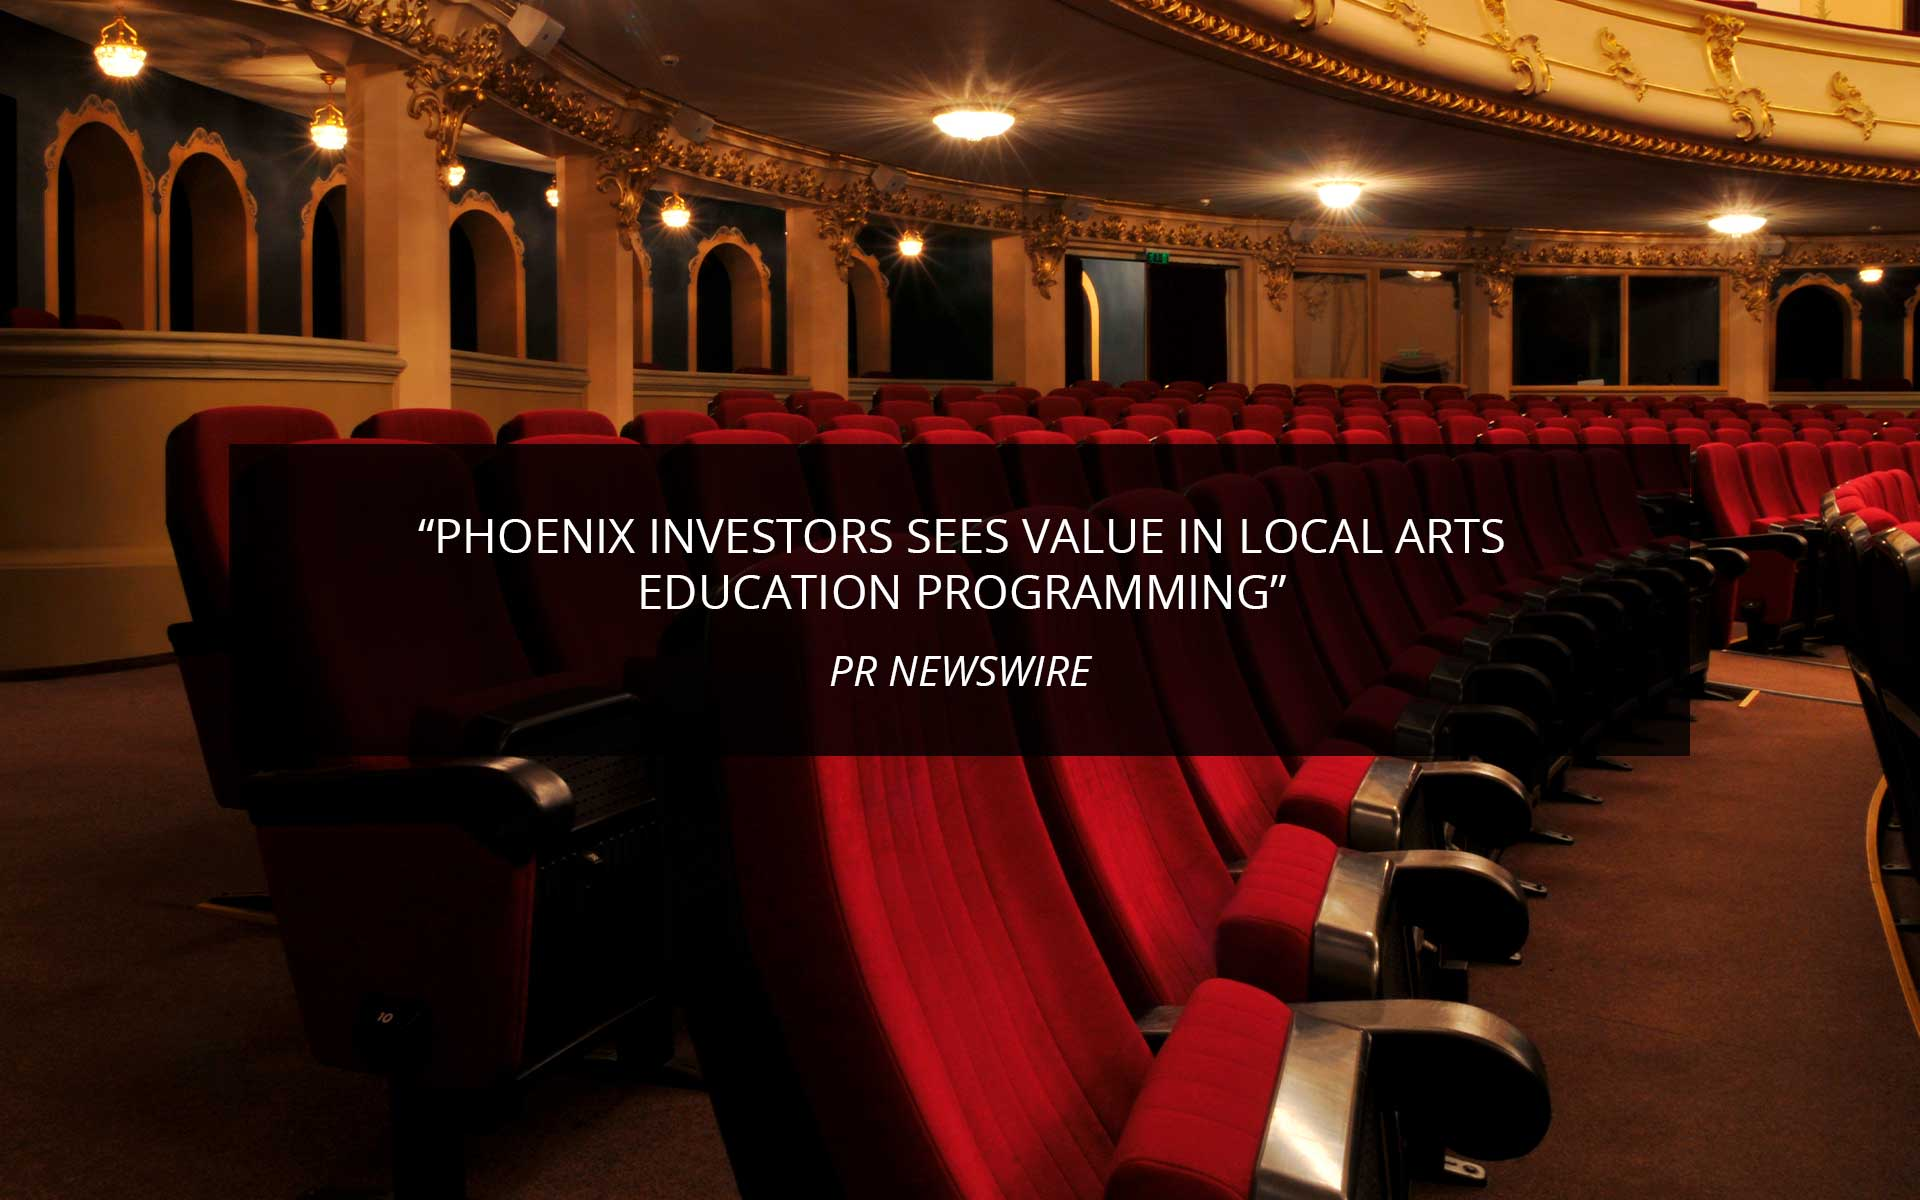 Phoenix Investors Sees Value in Local Arts Education Programming | Phoenix Investors